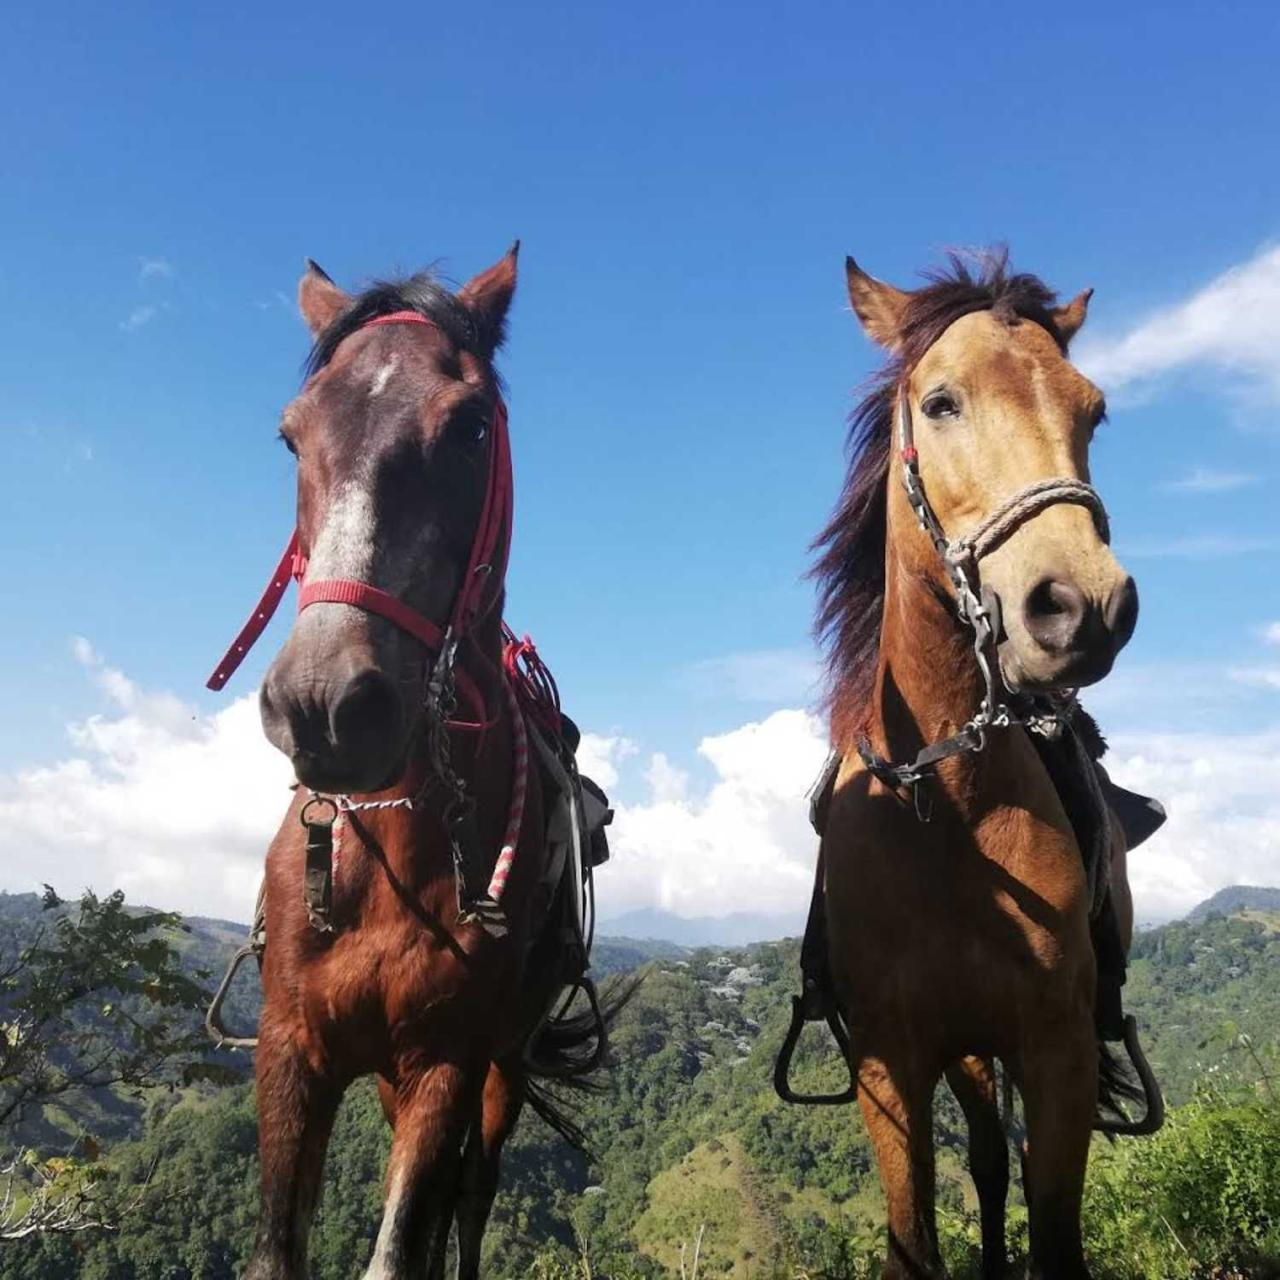 Horseride, Coffee Tour & Willys Ride from Salento